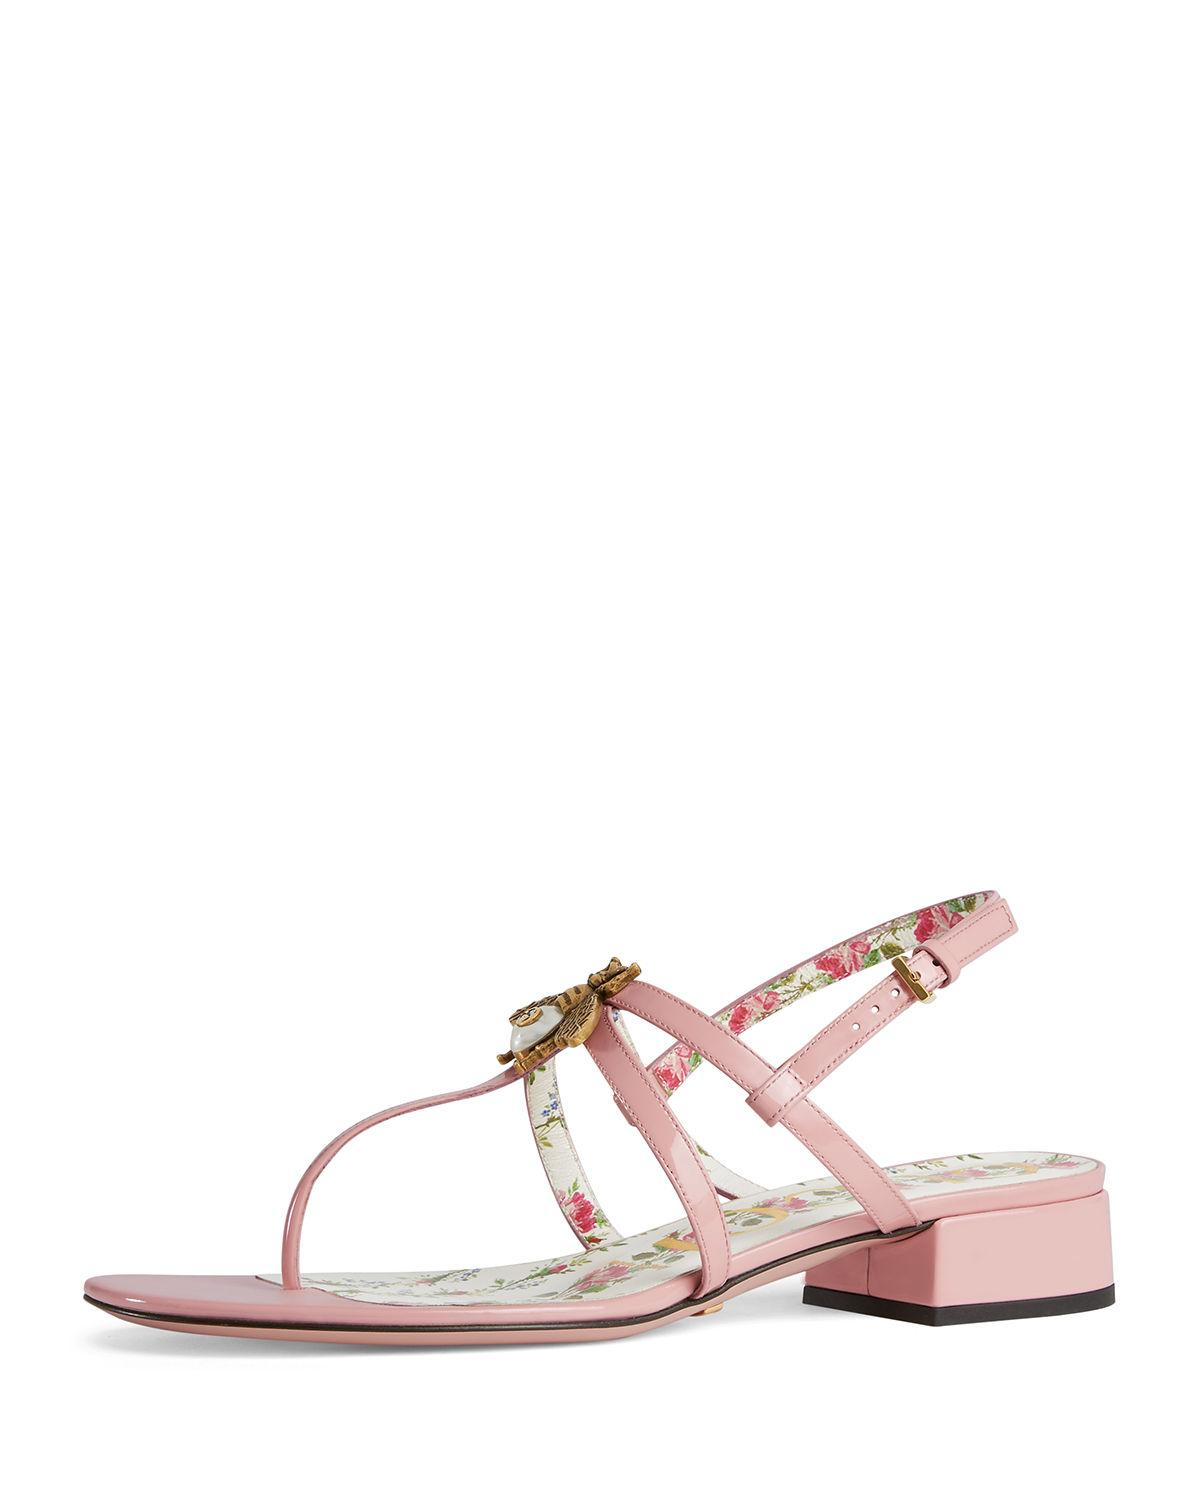 fa46ca8eeb2fbf Gucci Women s Patent Leather Sandals - Pink Size 6.5 A great designer gift.  Stay on top of Spring trends and shop Gucci at Barneys Warehouse.